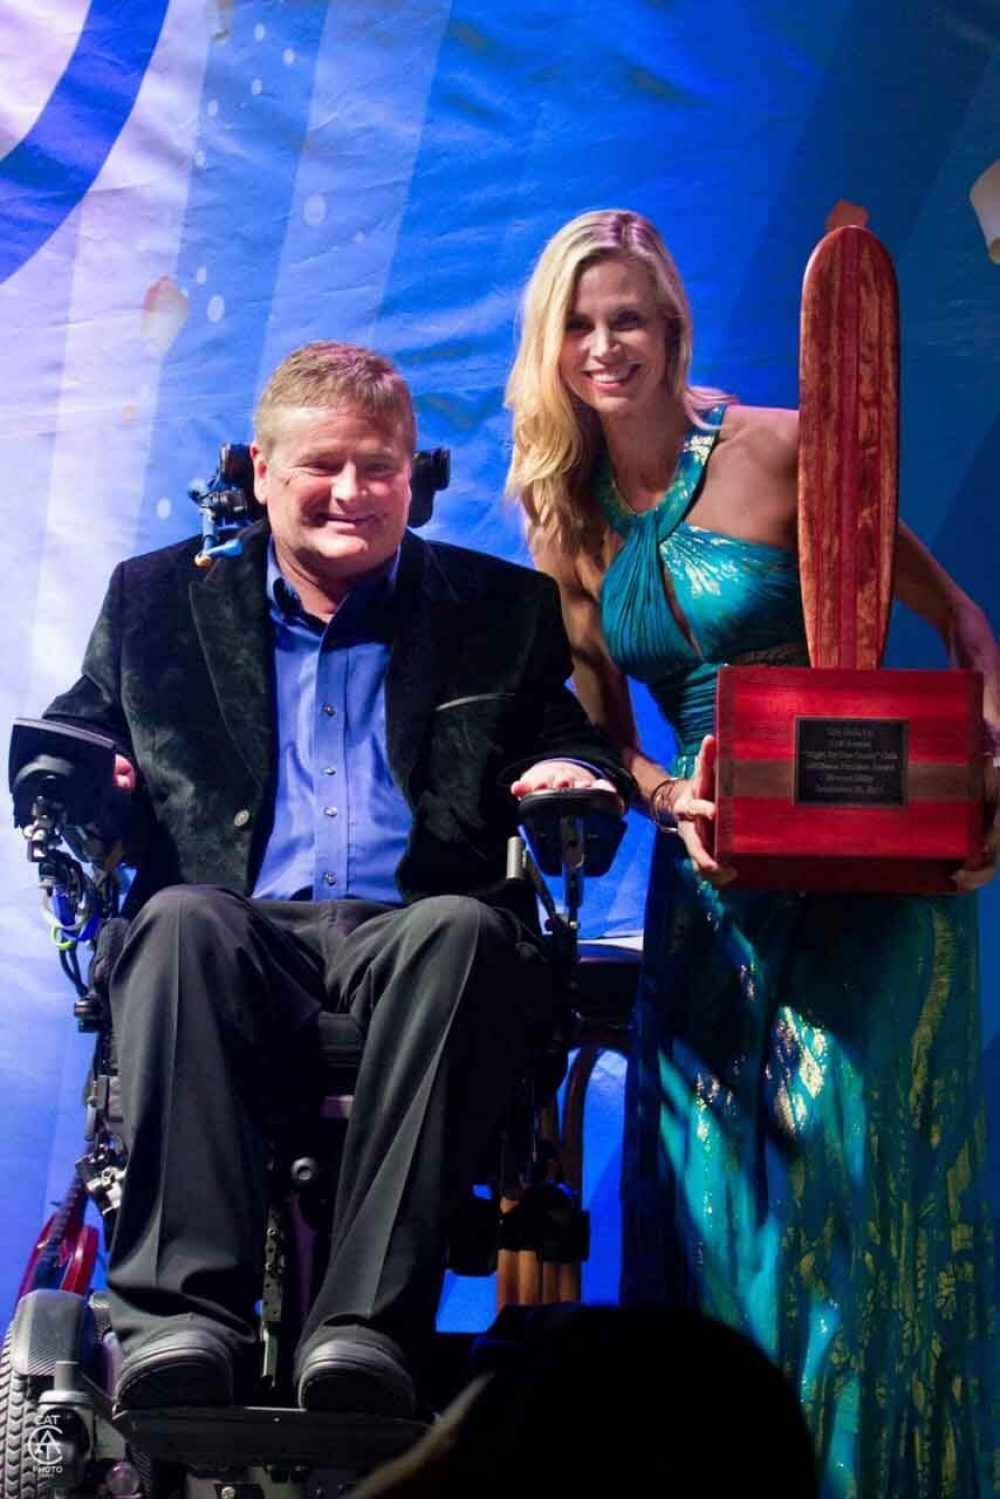 Sam Schmidt and a representative from Life Rolls On holds the Freedom Award